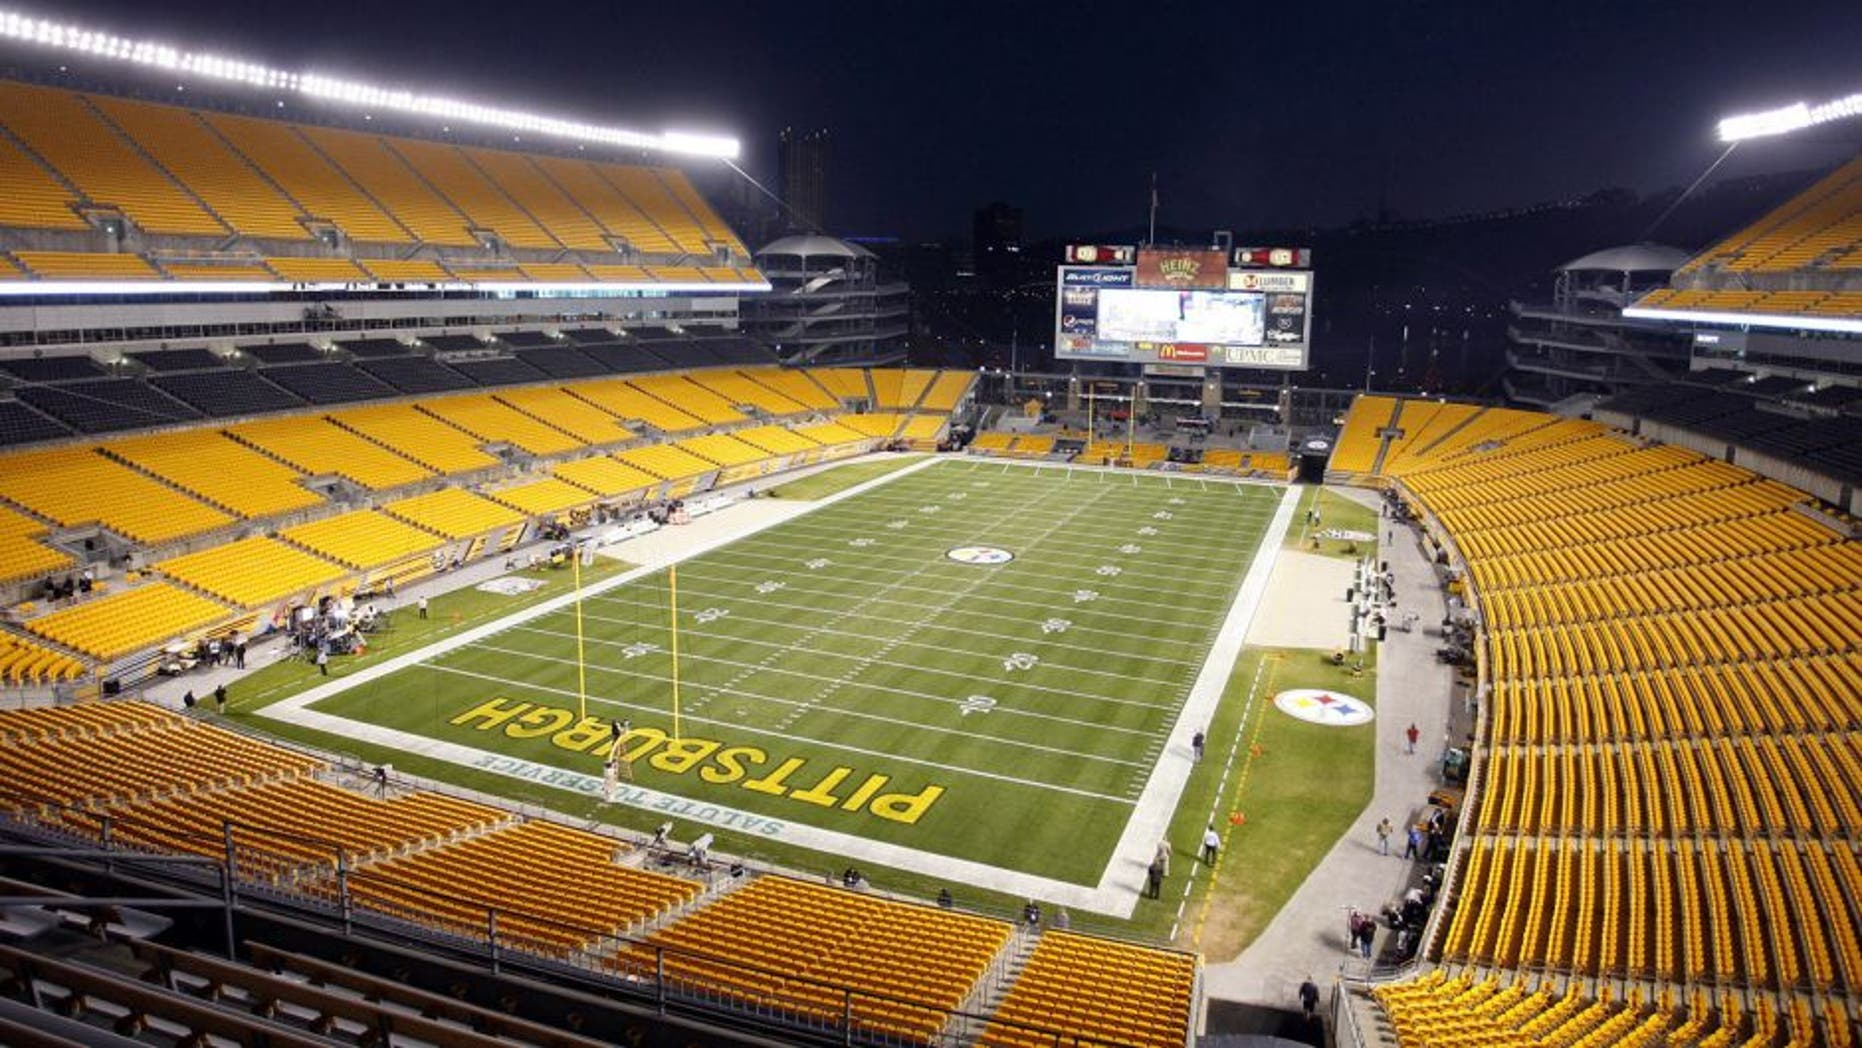 November 18, 2012; Pittsburgh, PA, USA; General exterior view of Heinz Field before the Pittsburgh Steelers and Baltimore Ravens play at Heinz Field. Mandatory Credit: Charles LeClaire-USA TODAY Sports